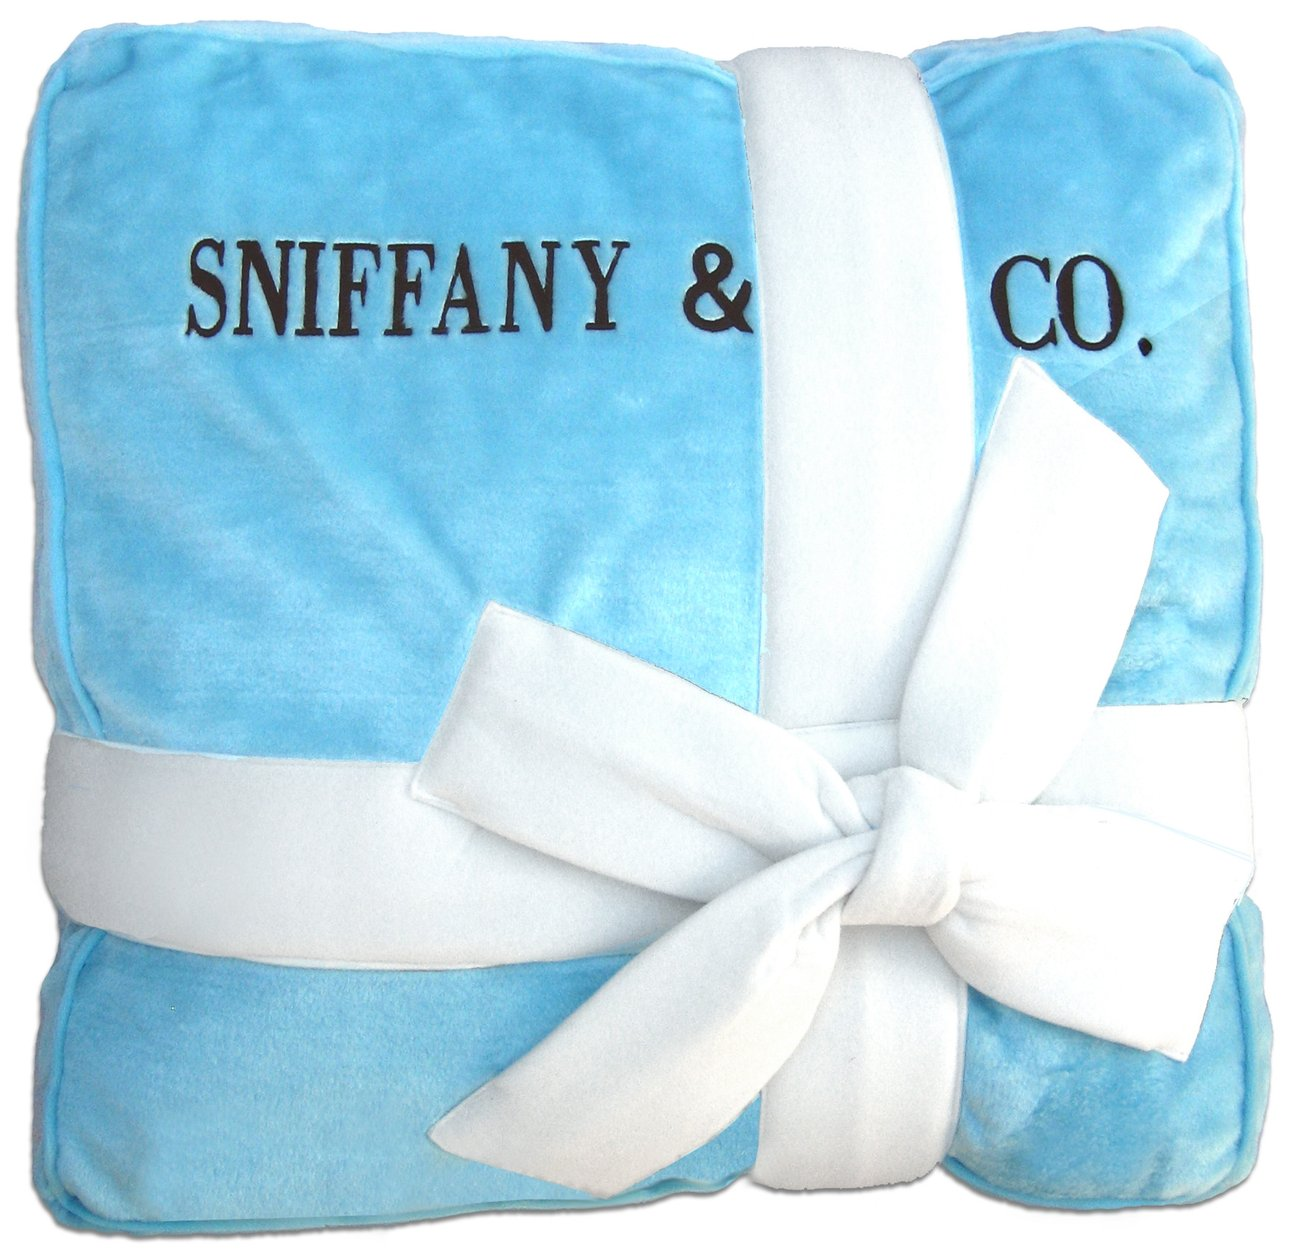 Sniffany Plush Dog Bed